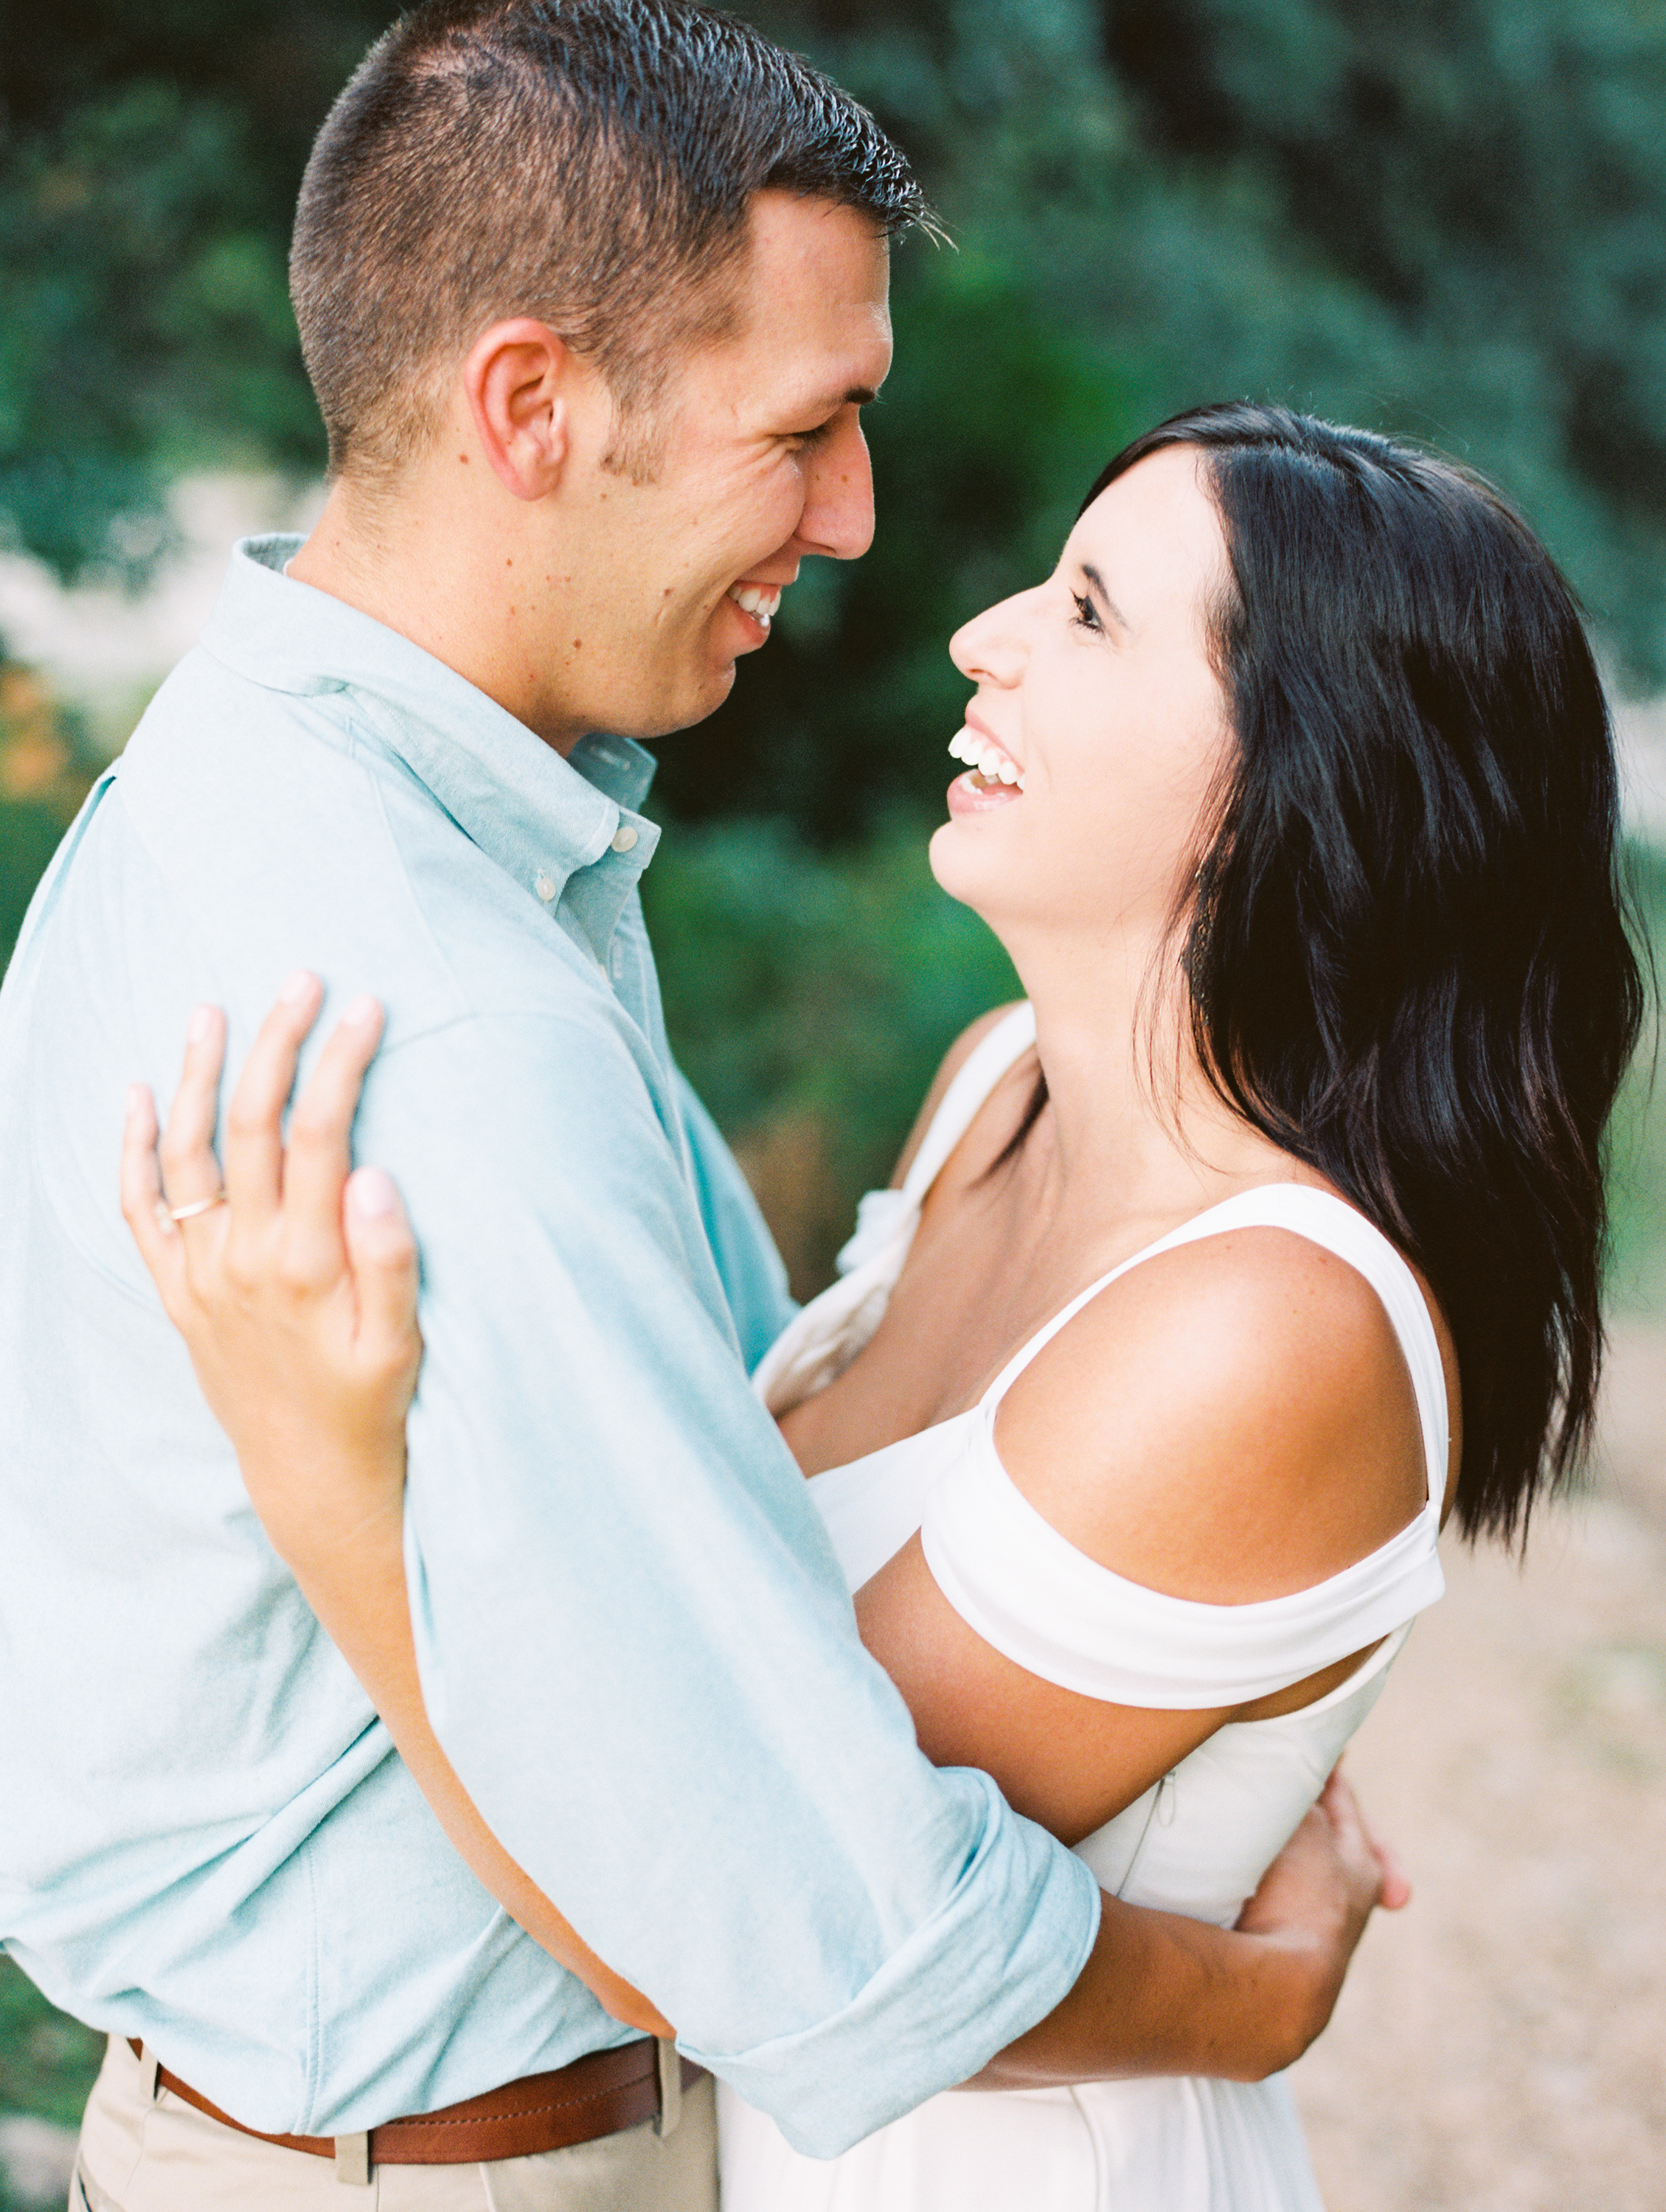 Austin Engagement Session | Austin Wedding Photographer | Austin Film Wedding Photographer, What to Wear For Engagement Session | britnidean.com | Britni Dean Photography